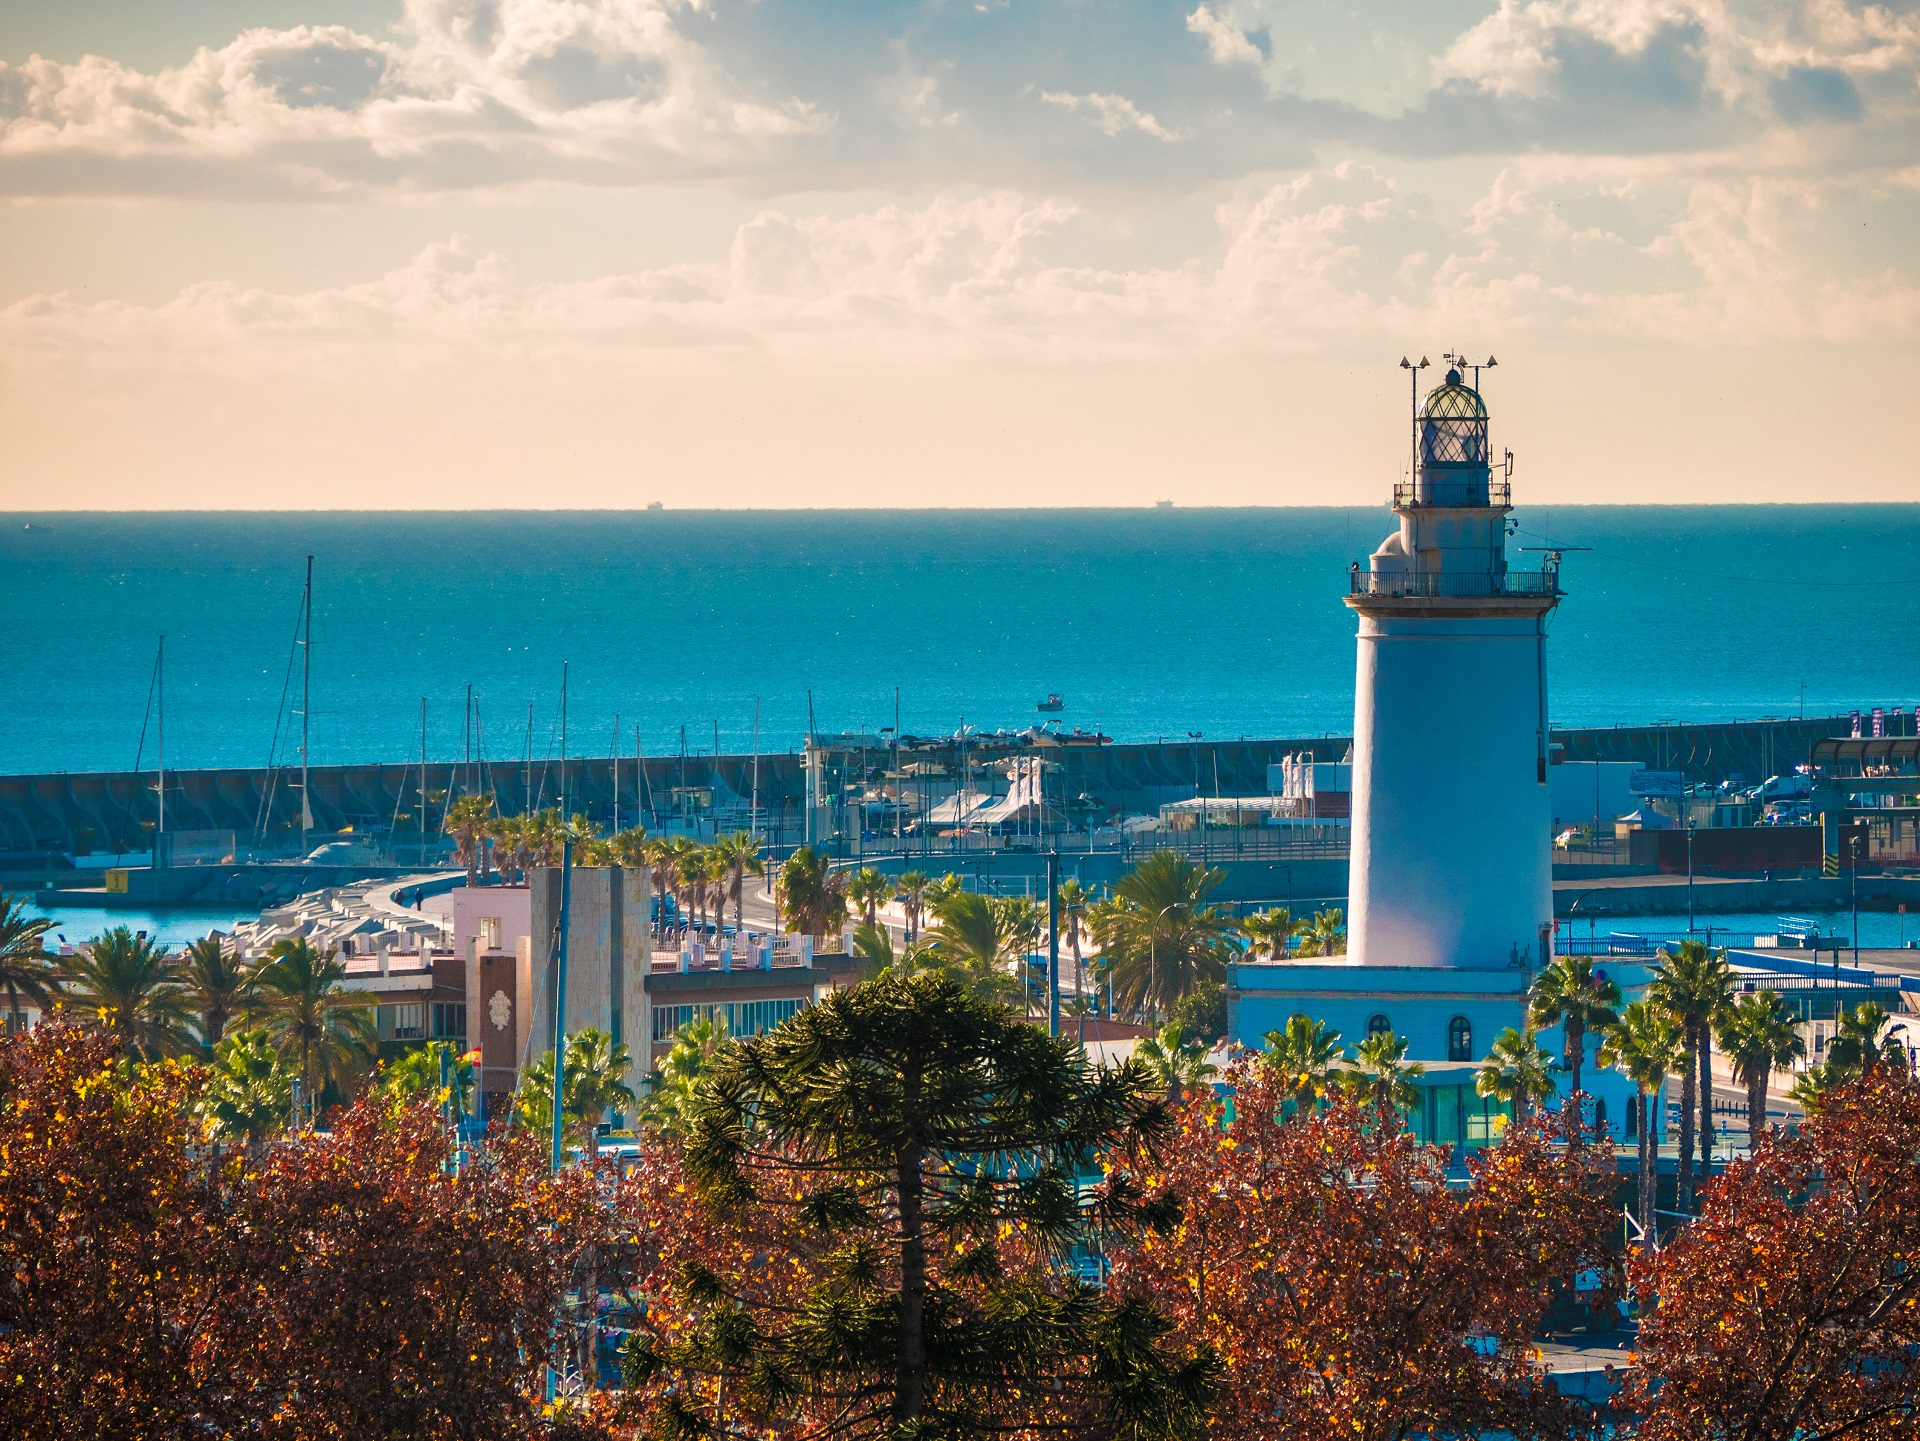 view-malaga-port-with-some-trees-foreground